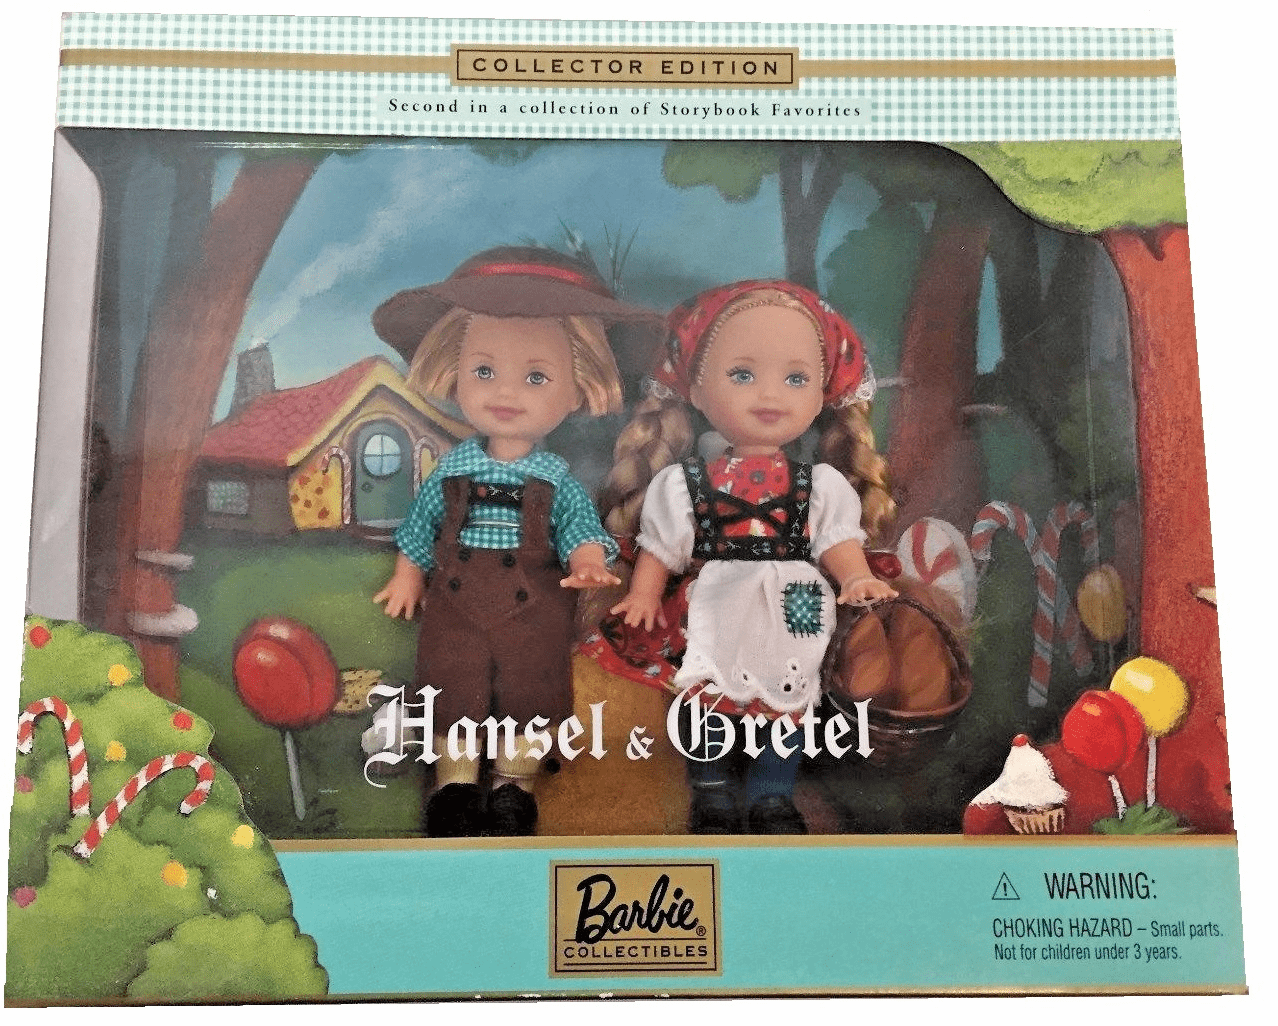 Mattel Barbie Collectibles Hansel & Gretel Collector Edition Set